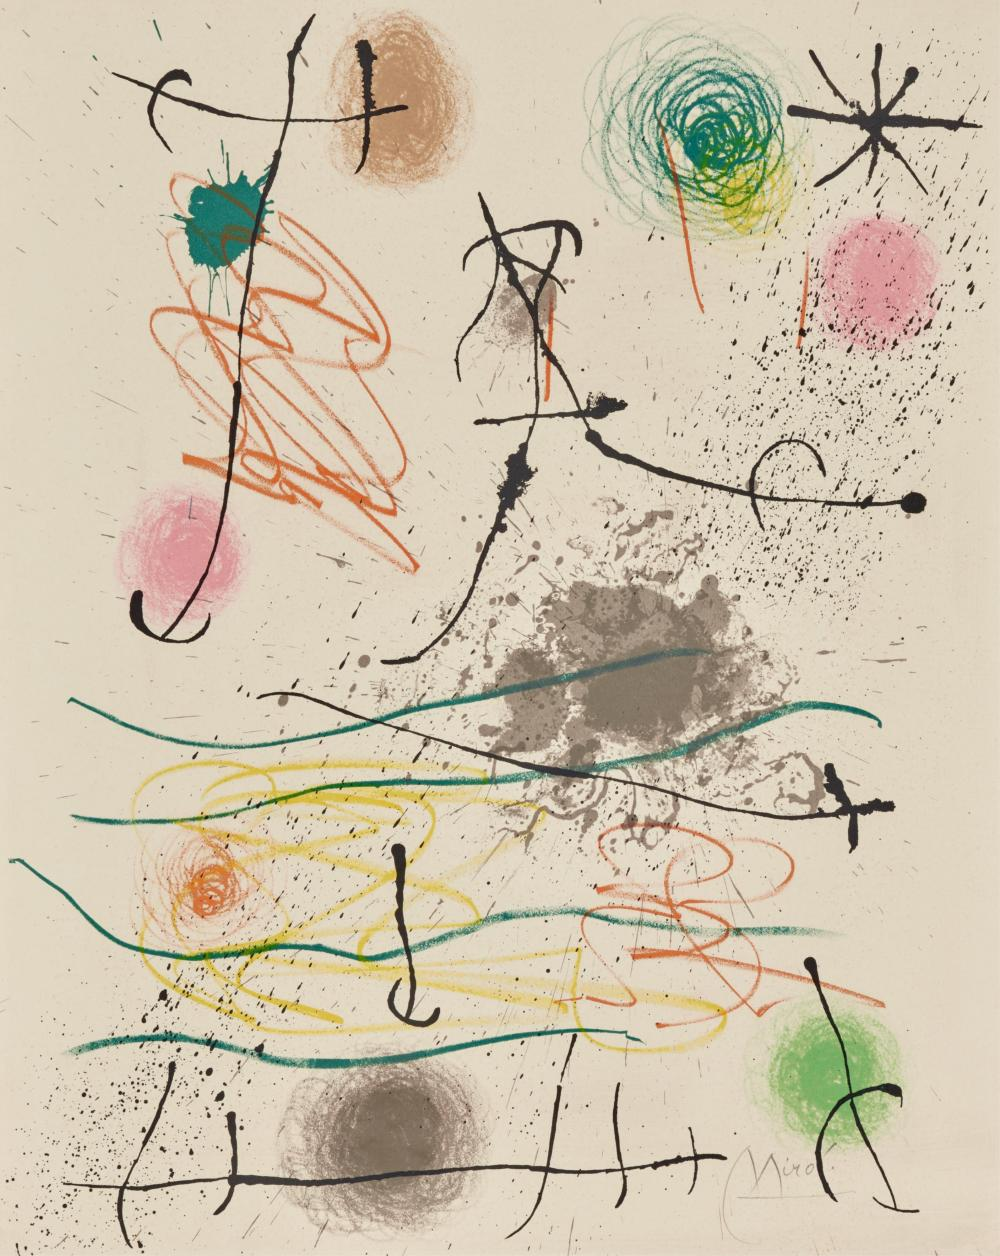 JOAN MIRO, (Spanish, 1893-1983), Quelques fleurs pour des amis (Frontispiece), 1964, lithograph in colors, sheet: 16 x 25 in. (unfolded), frame: 18 1/2 x 15 1/2 in.